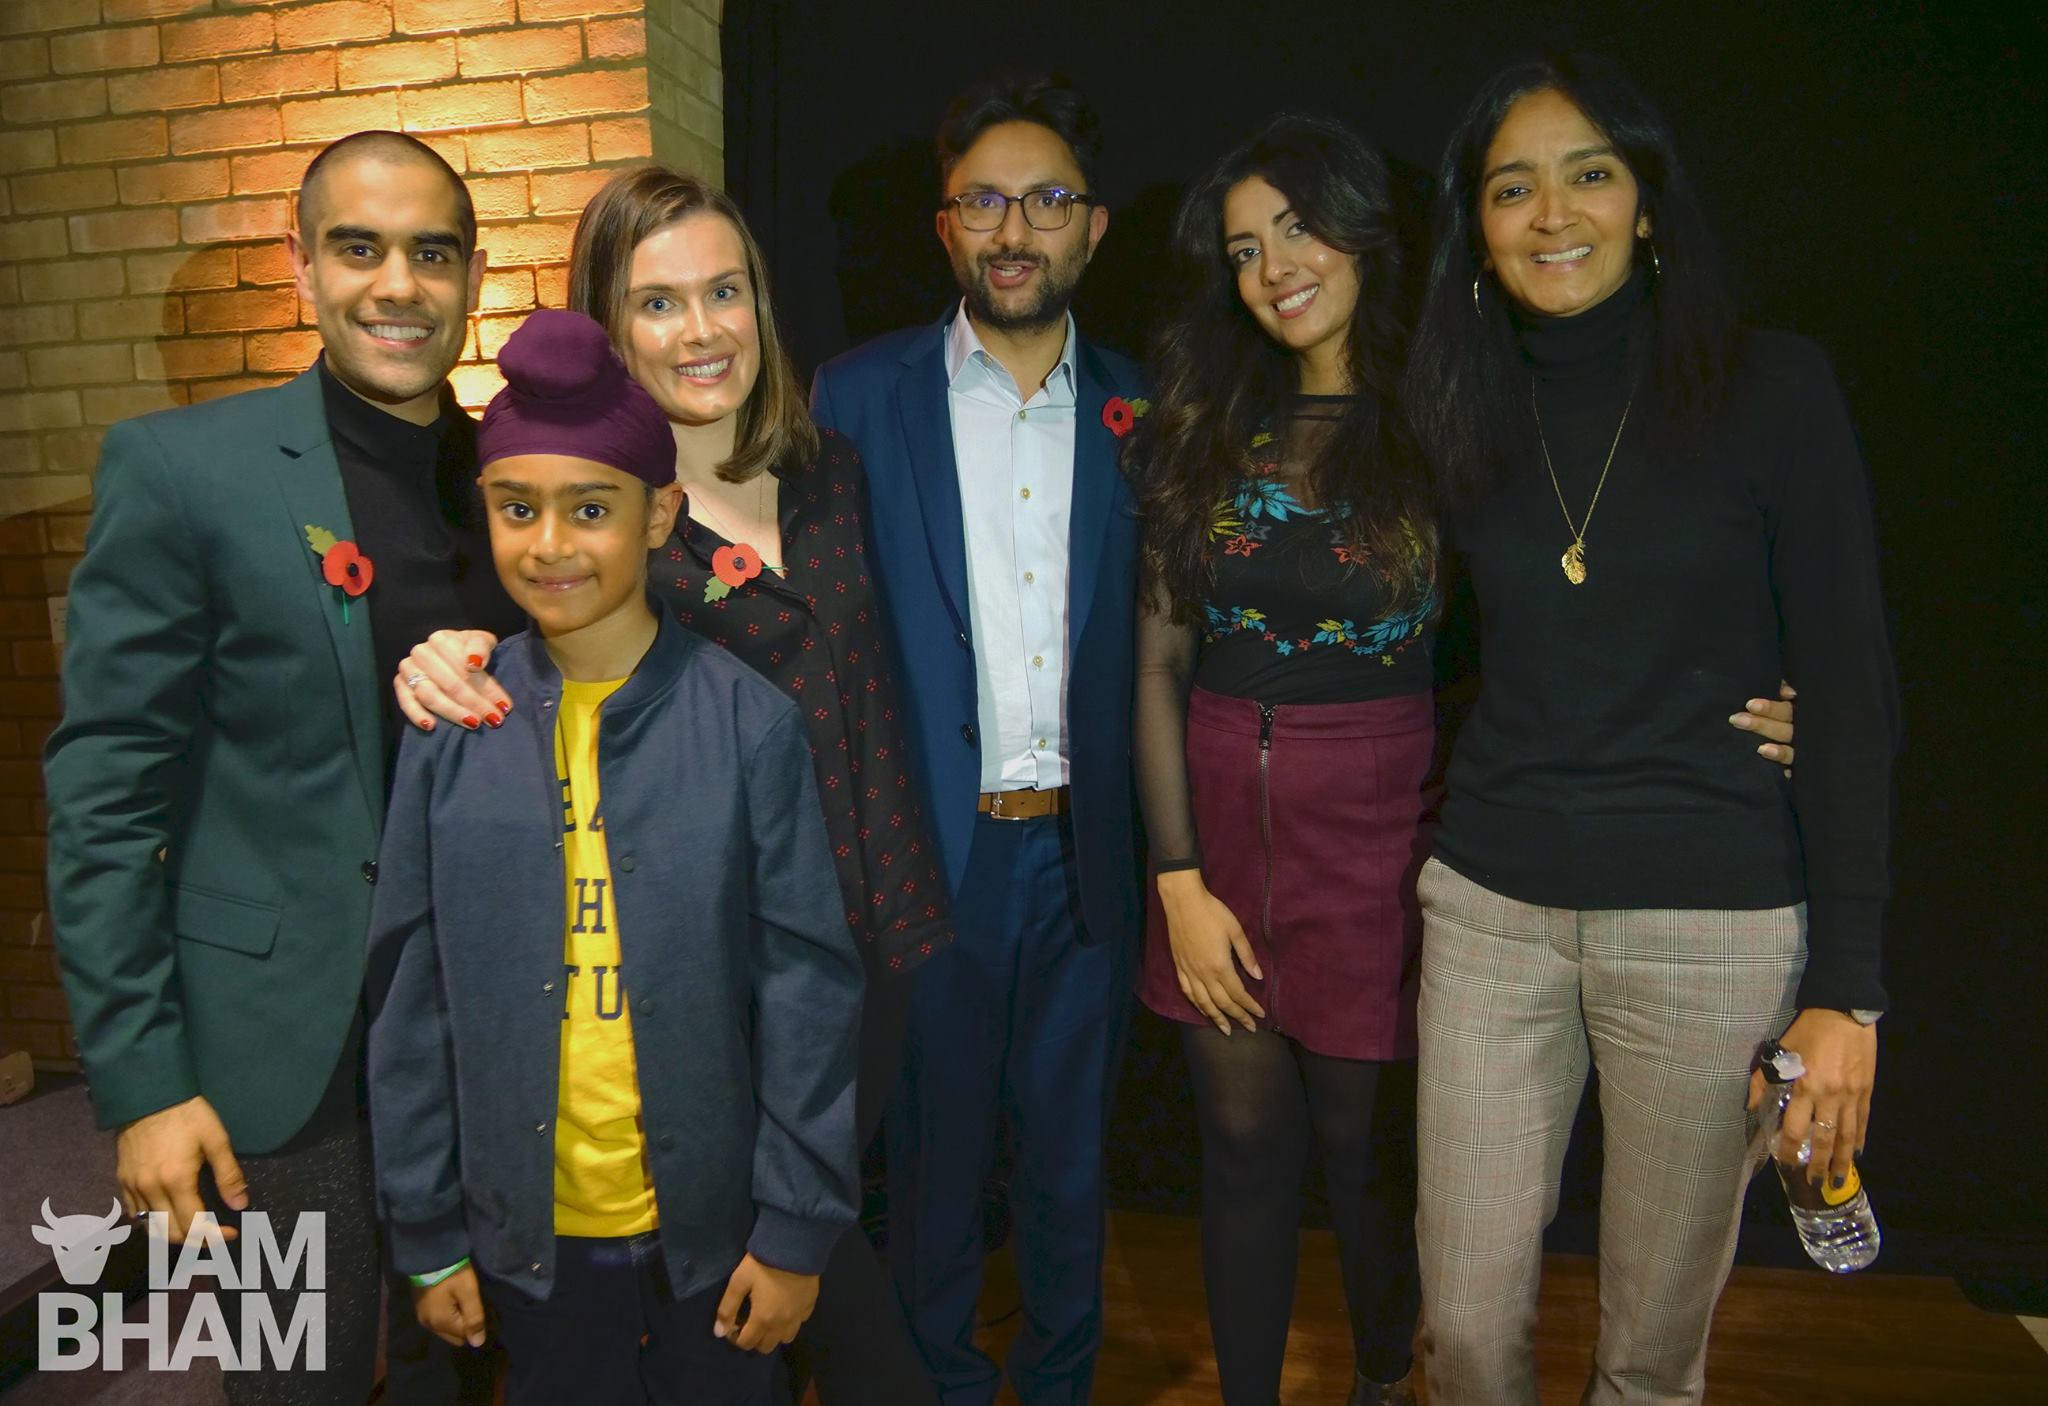 The Boy with the Topknot cast and crew members - Joined by BBC Asian Network's Noreen Khan (second right) - following a special panel Q&A and screening in Wolverhampton